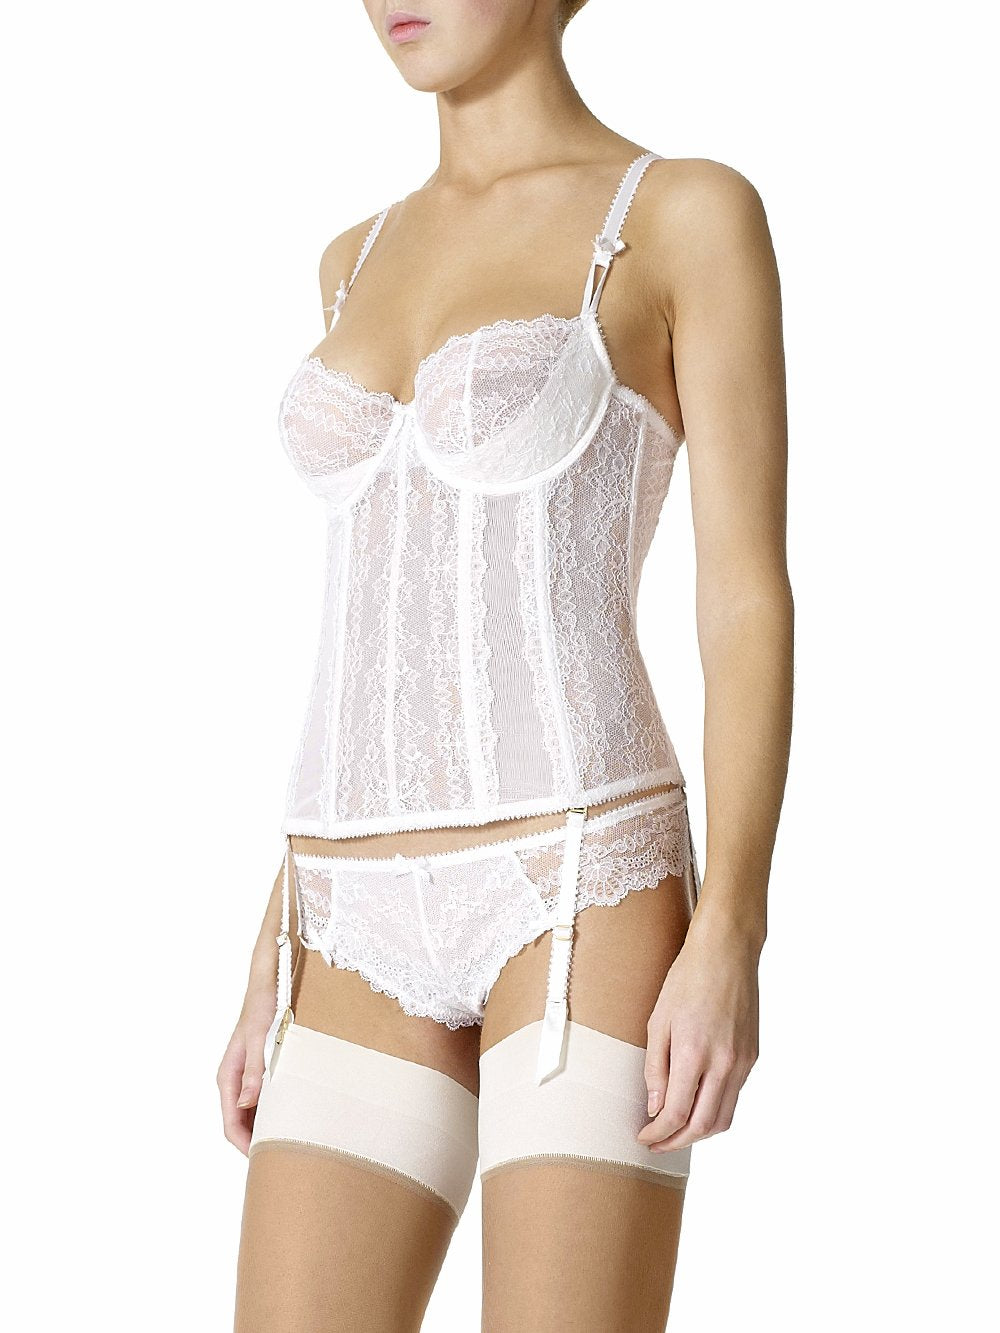 MYLA Nicole - Basque  White - S - M - L - XL